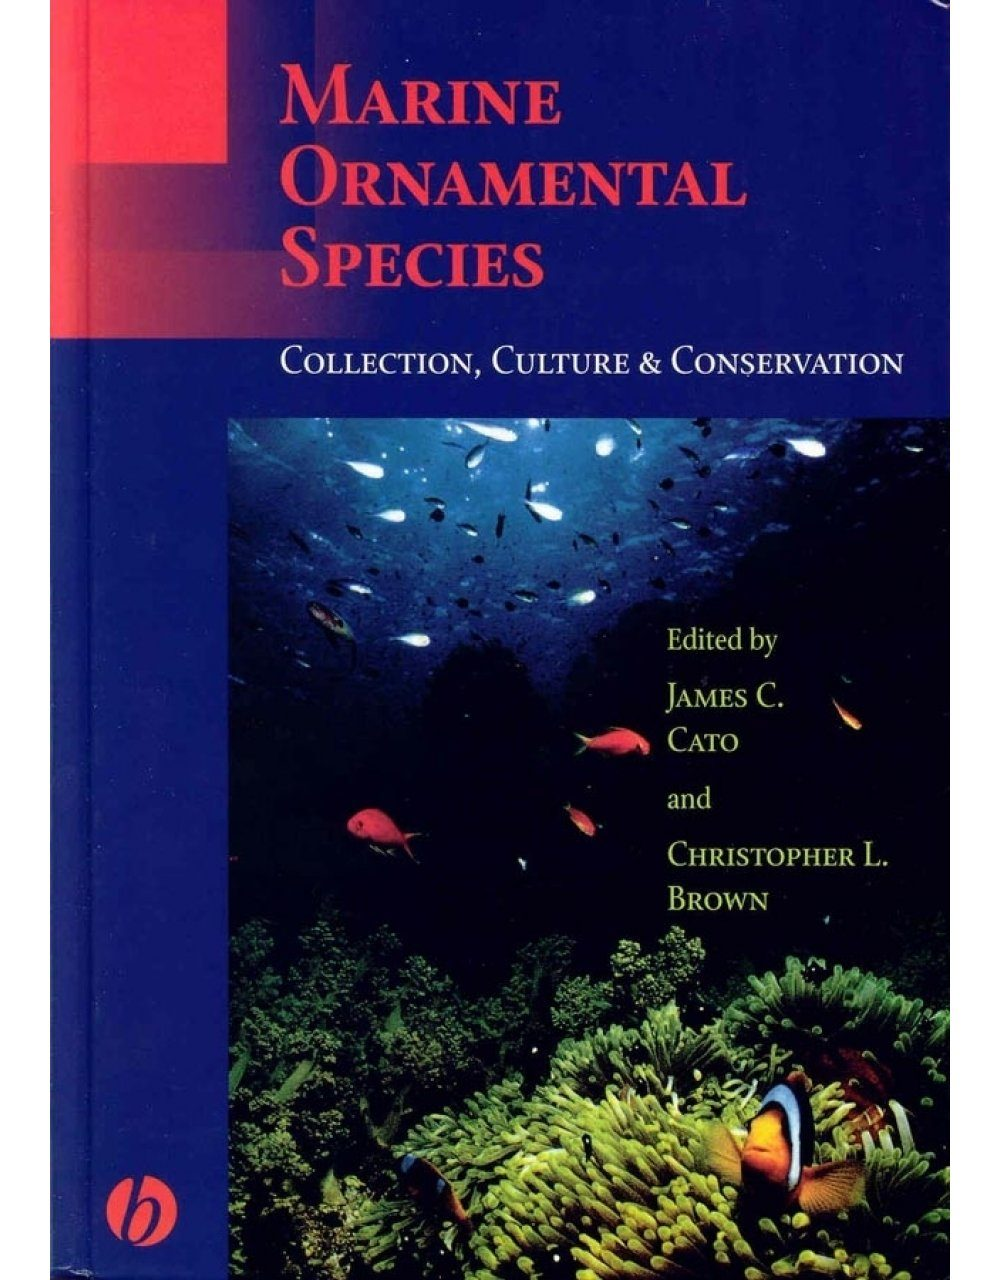 Marine Ornamental Species